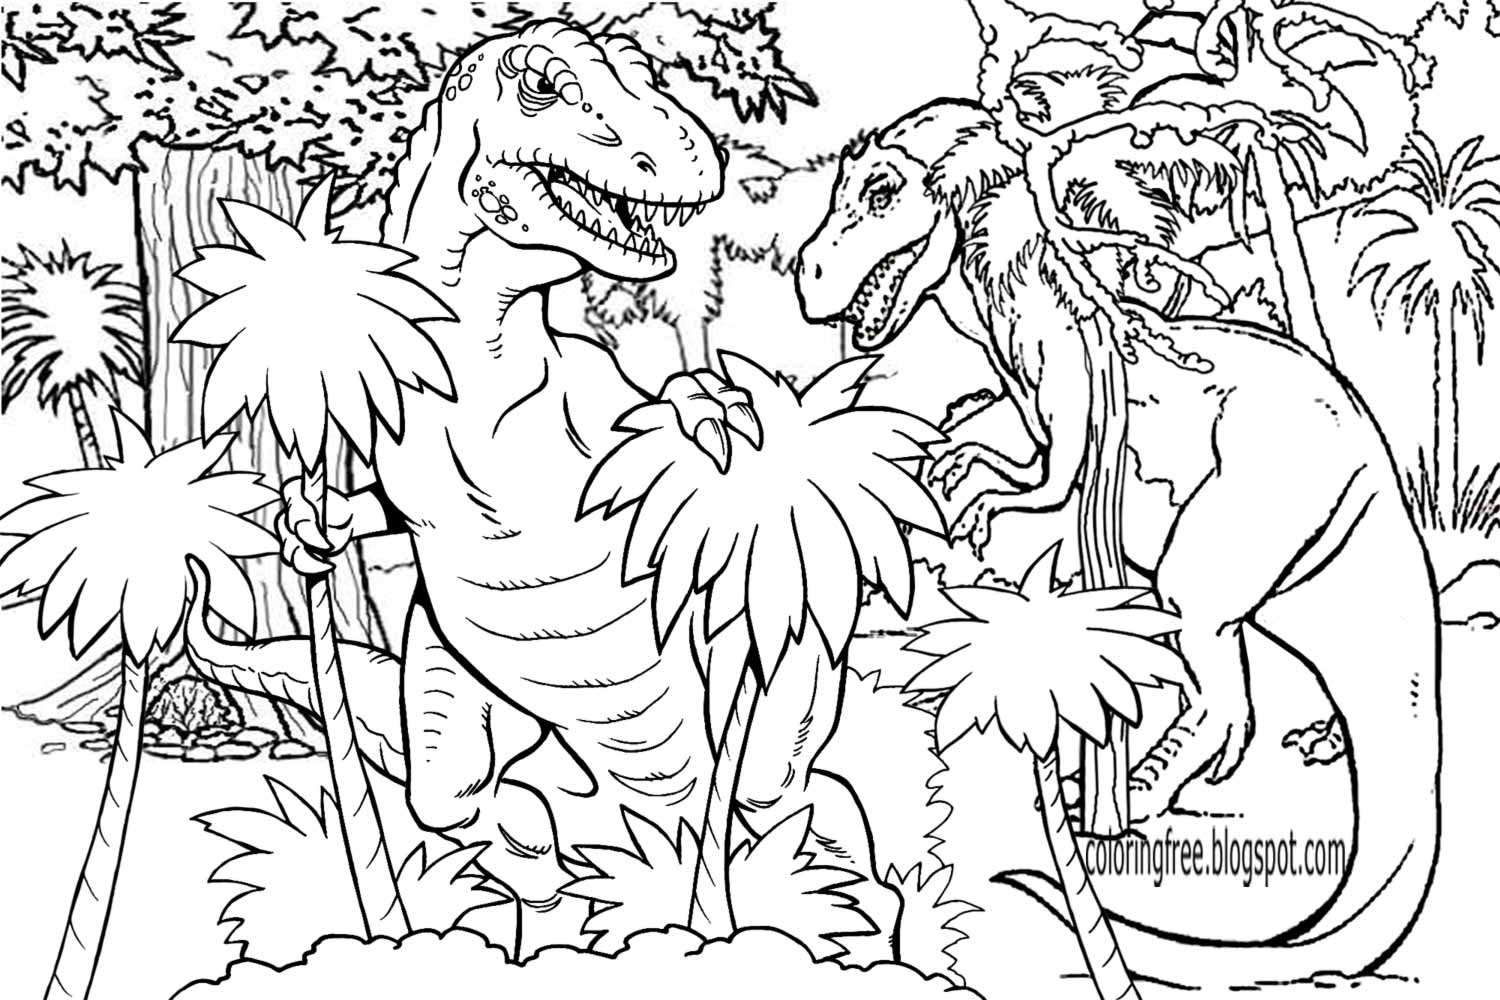 free printable dinosaur coloring pages lets coloring book prehistoric jurassic world dinosaurs coloring free pages printable dinosaur